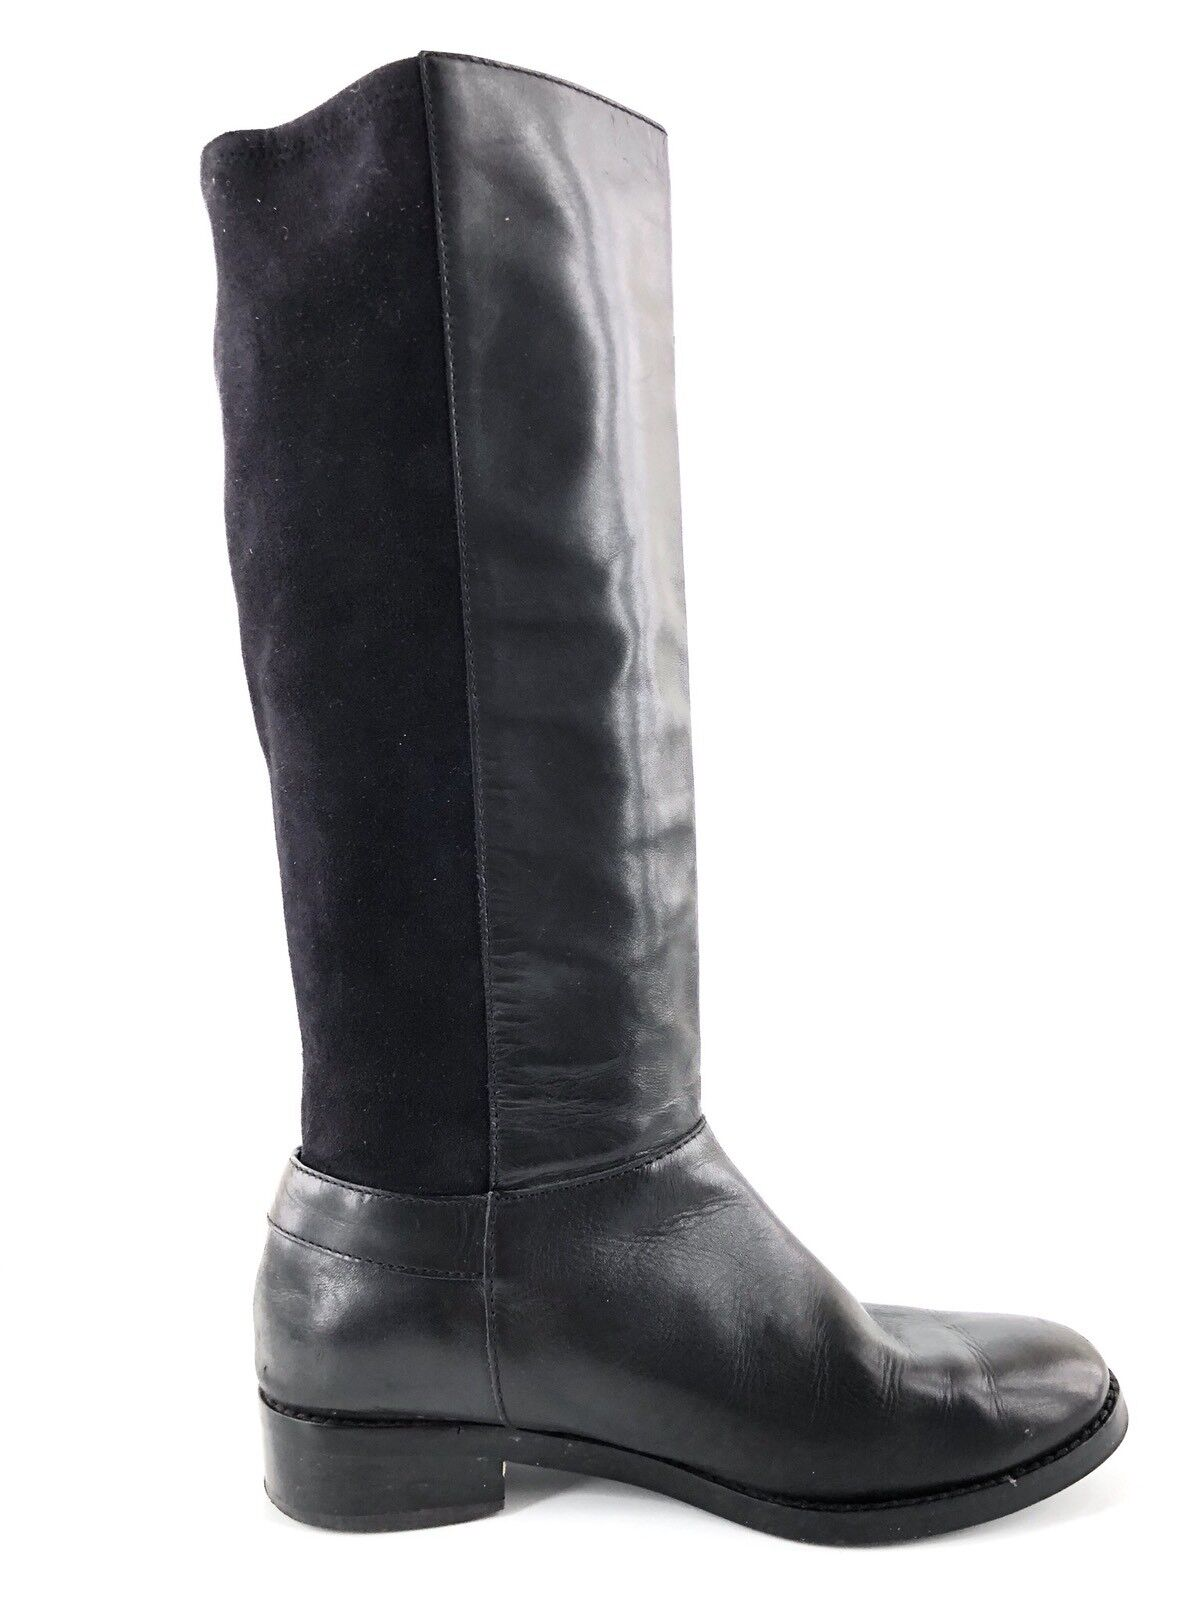 Cole Haan Adler Black Leather Suede Suede Suede Knee High Riding Boots Women's Size 7.5 M deef39